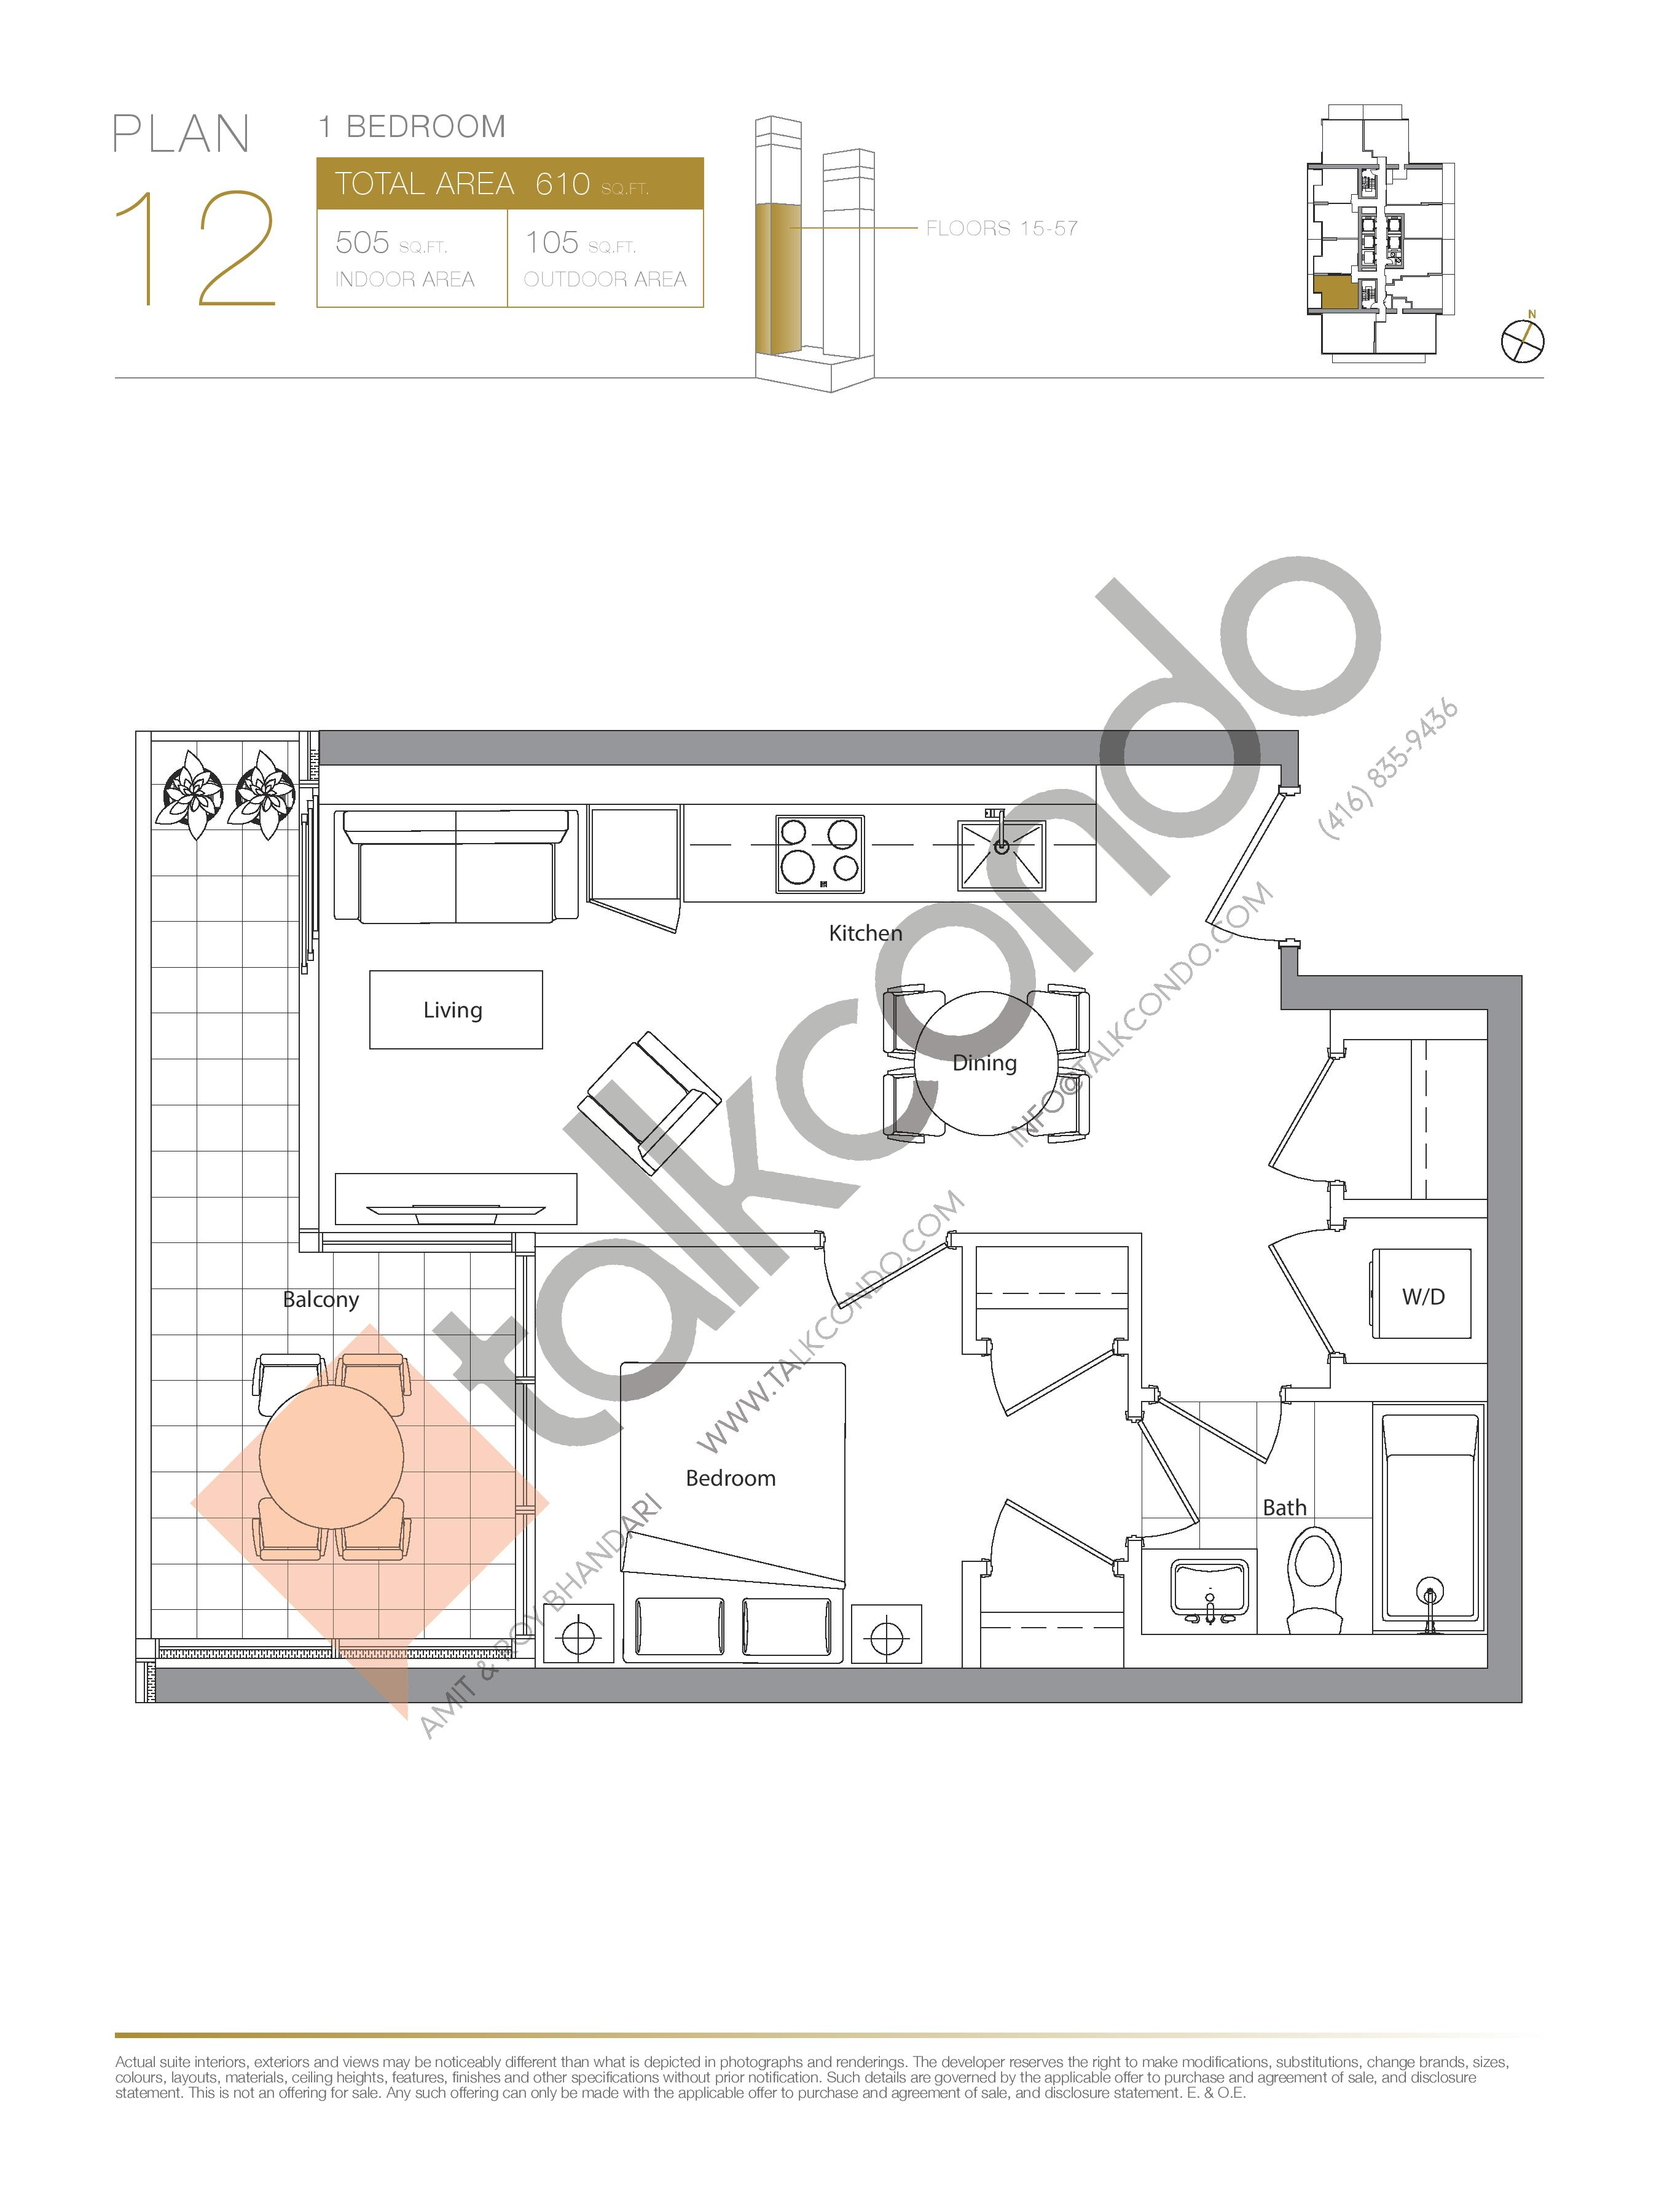 Plan 12 (New Release) Lower Floor Plan at Concord Canada House Condos - 505 sq.ft